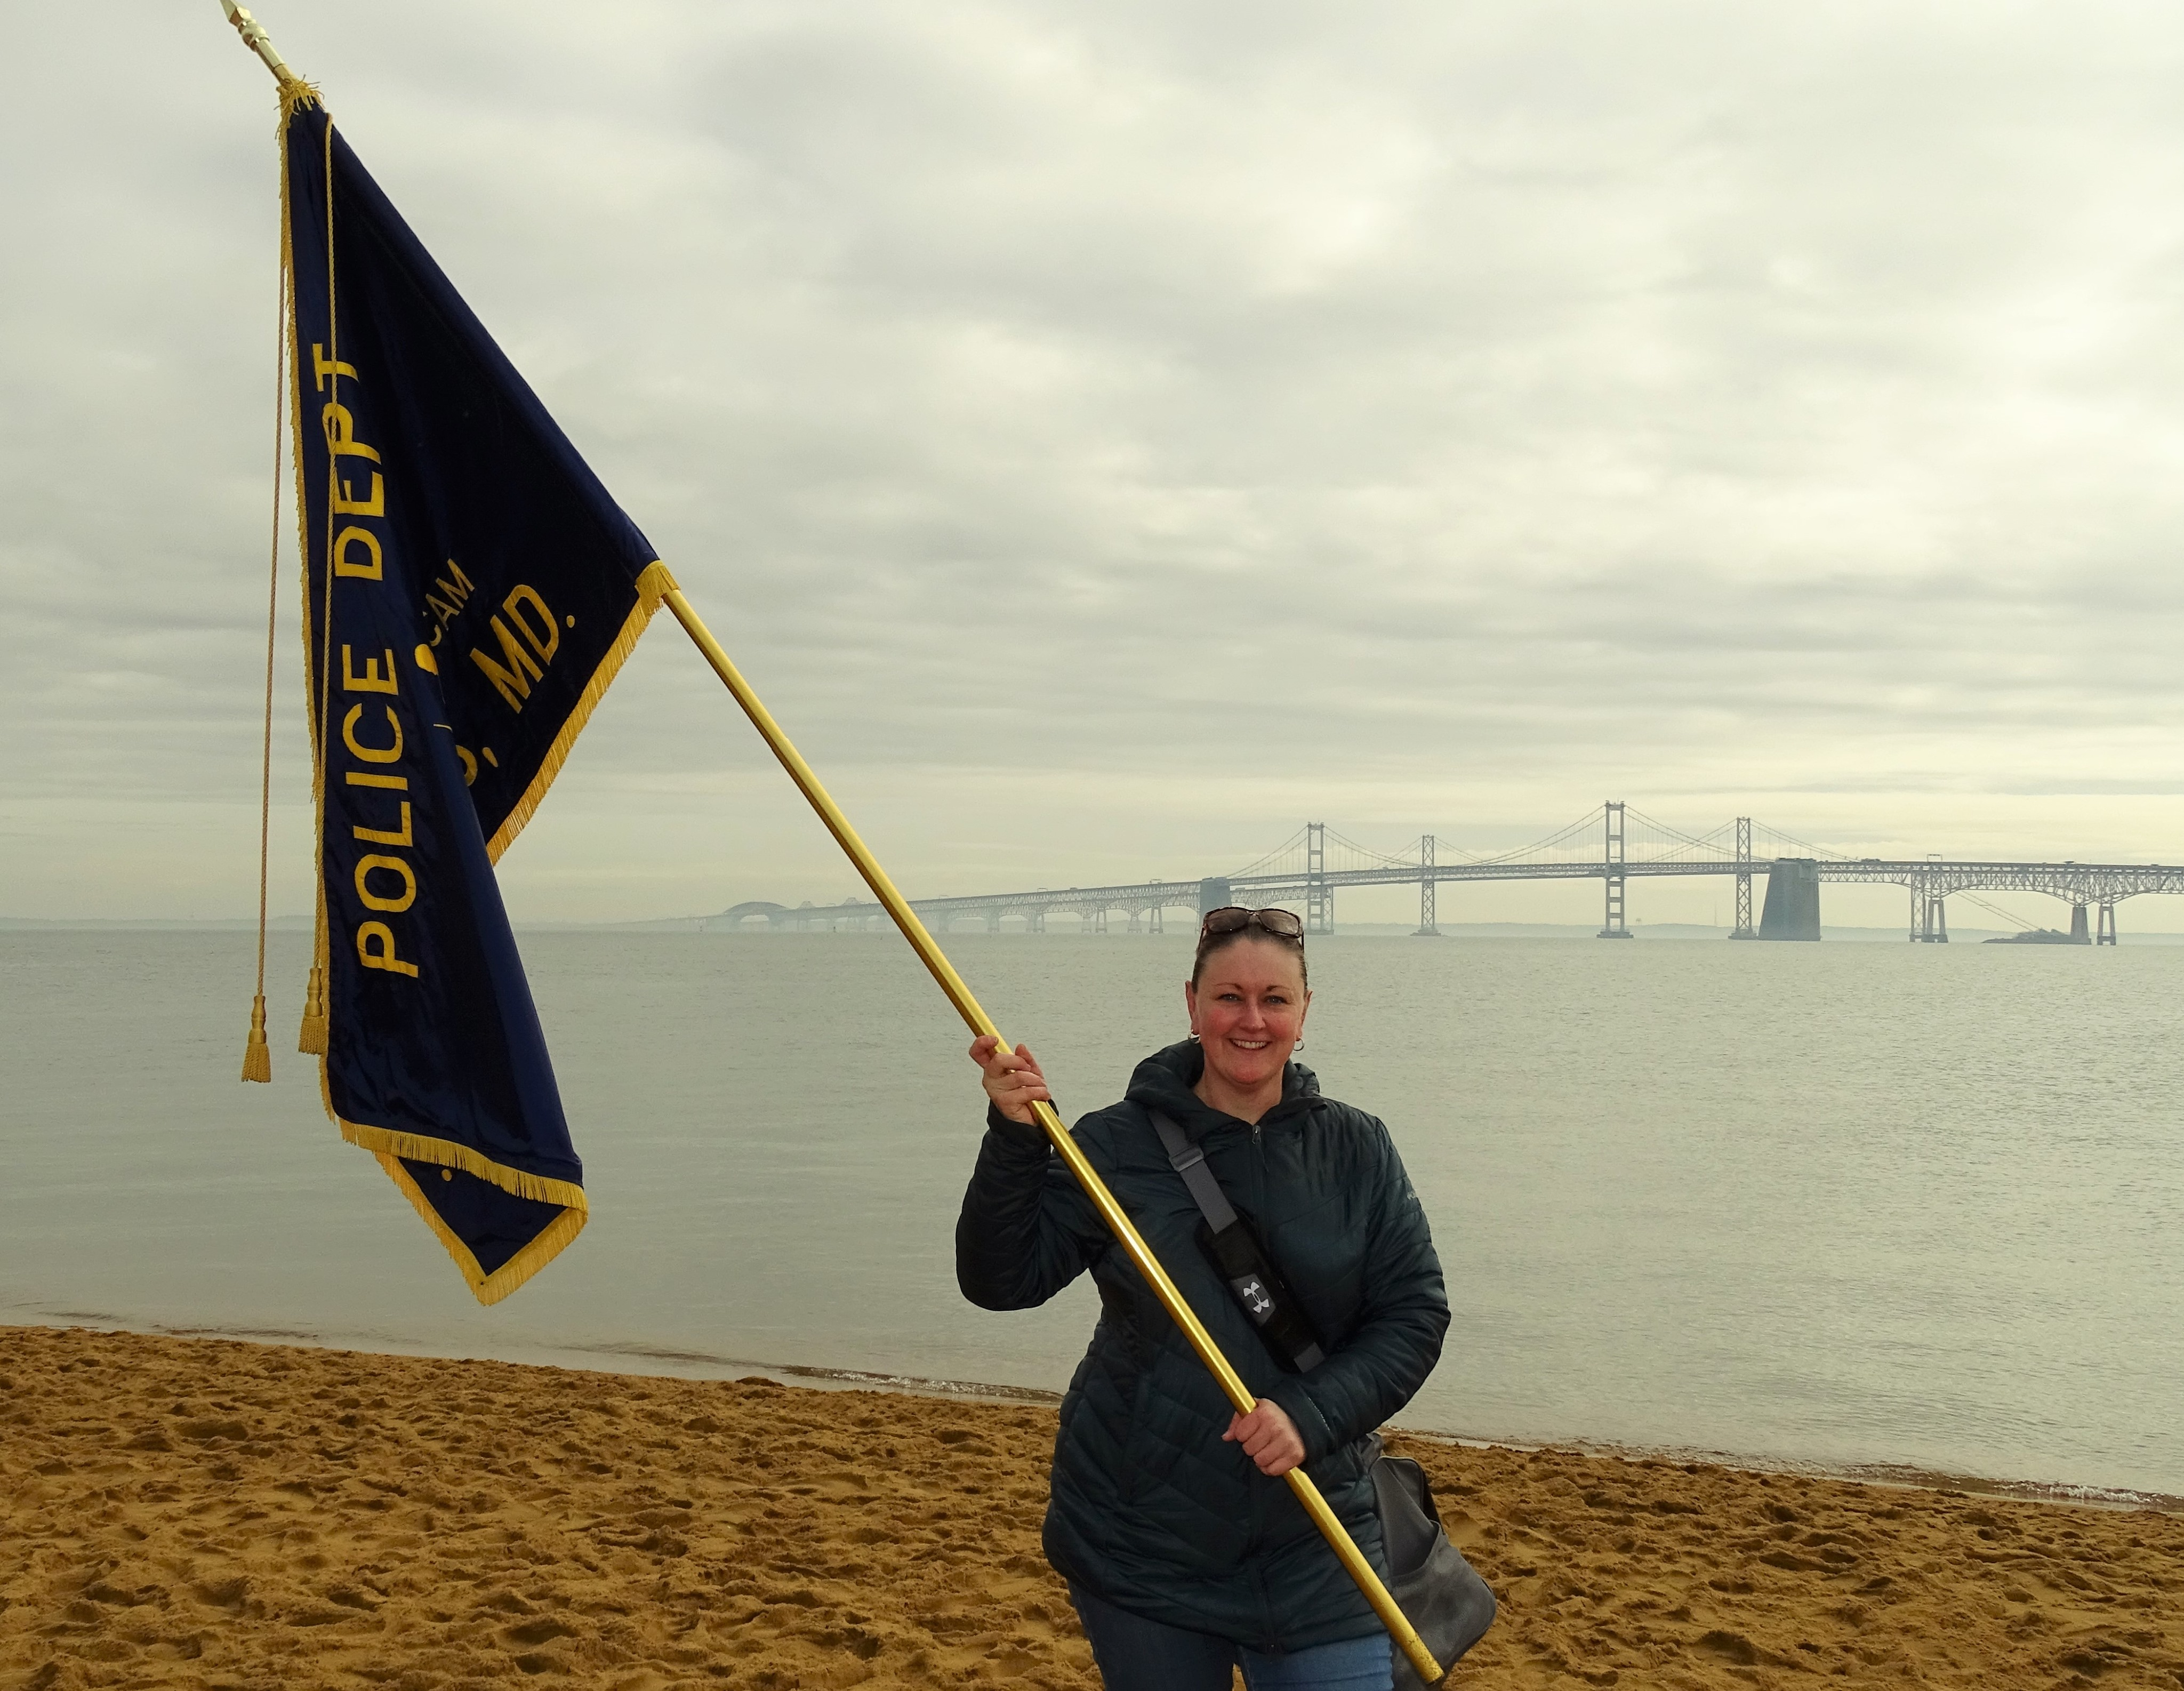 Officer holding the Annapolis police guidon on beach.